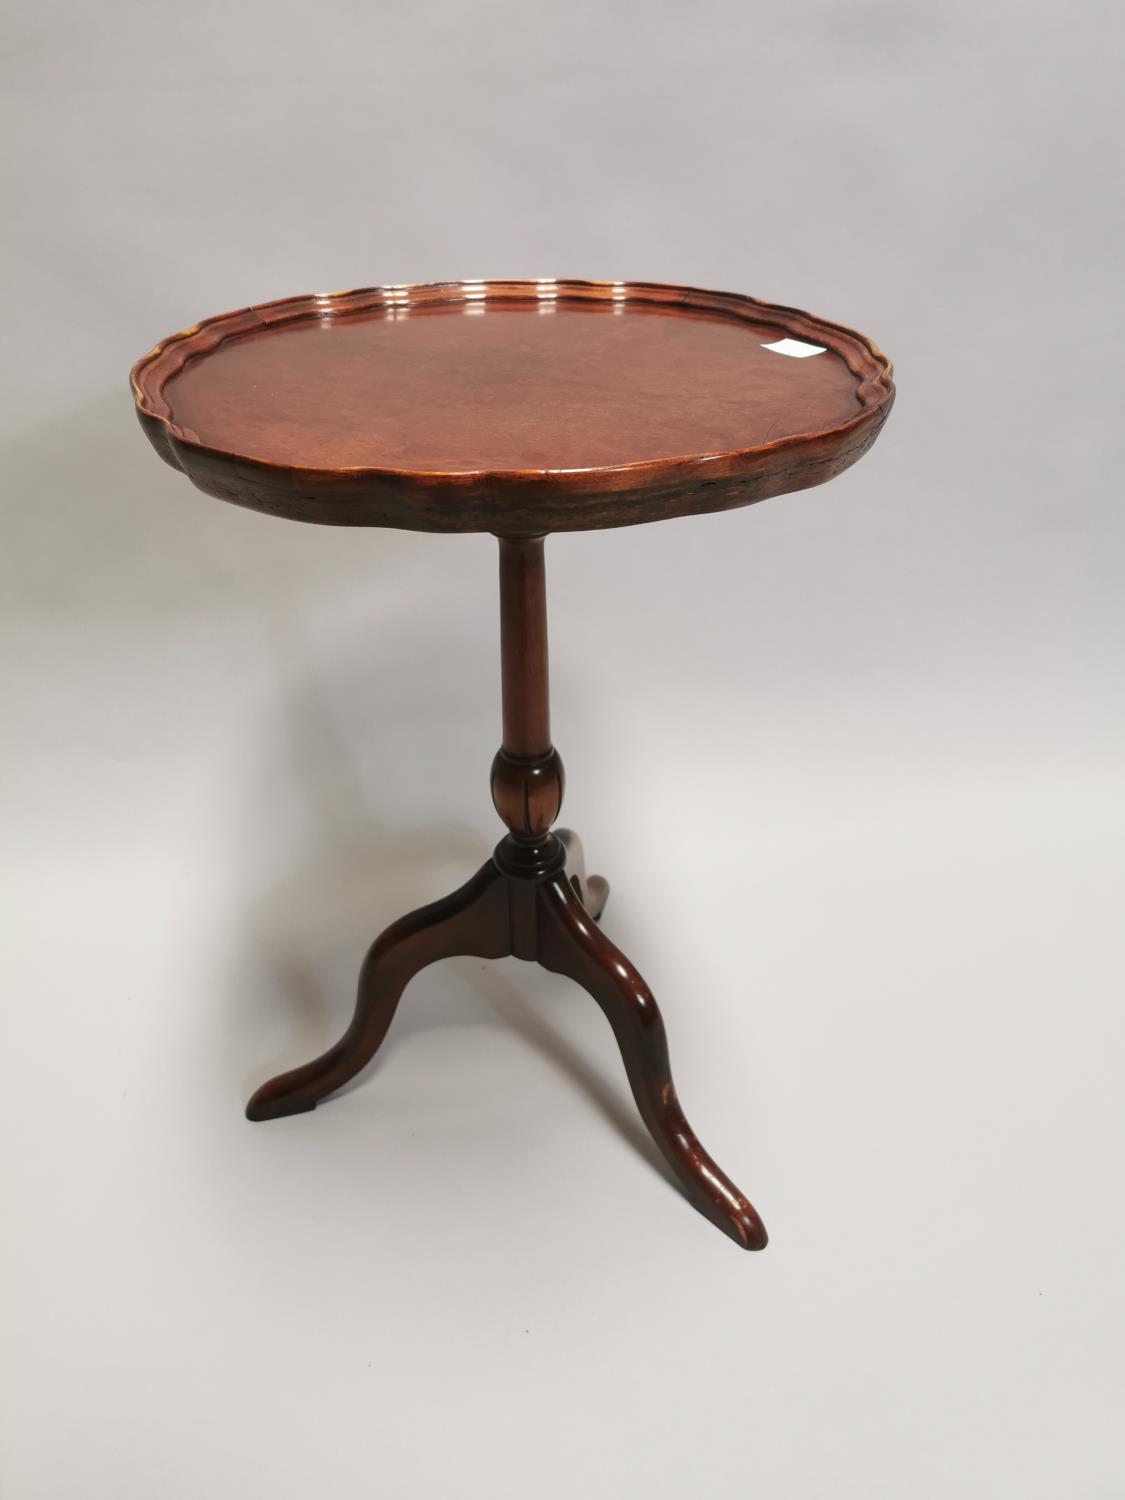 Edwardian walnut wine table on turned column and three outswept legs 53 cm H x 39 cm Dia.